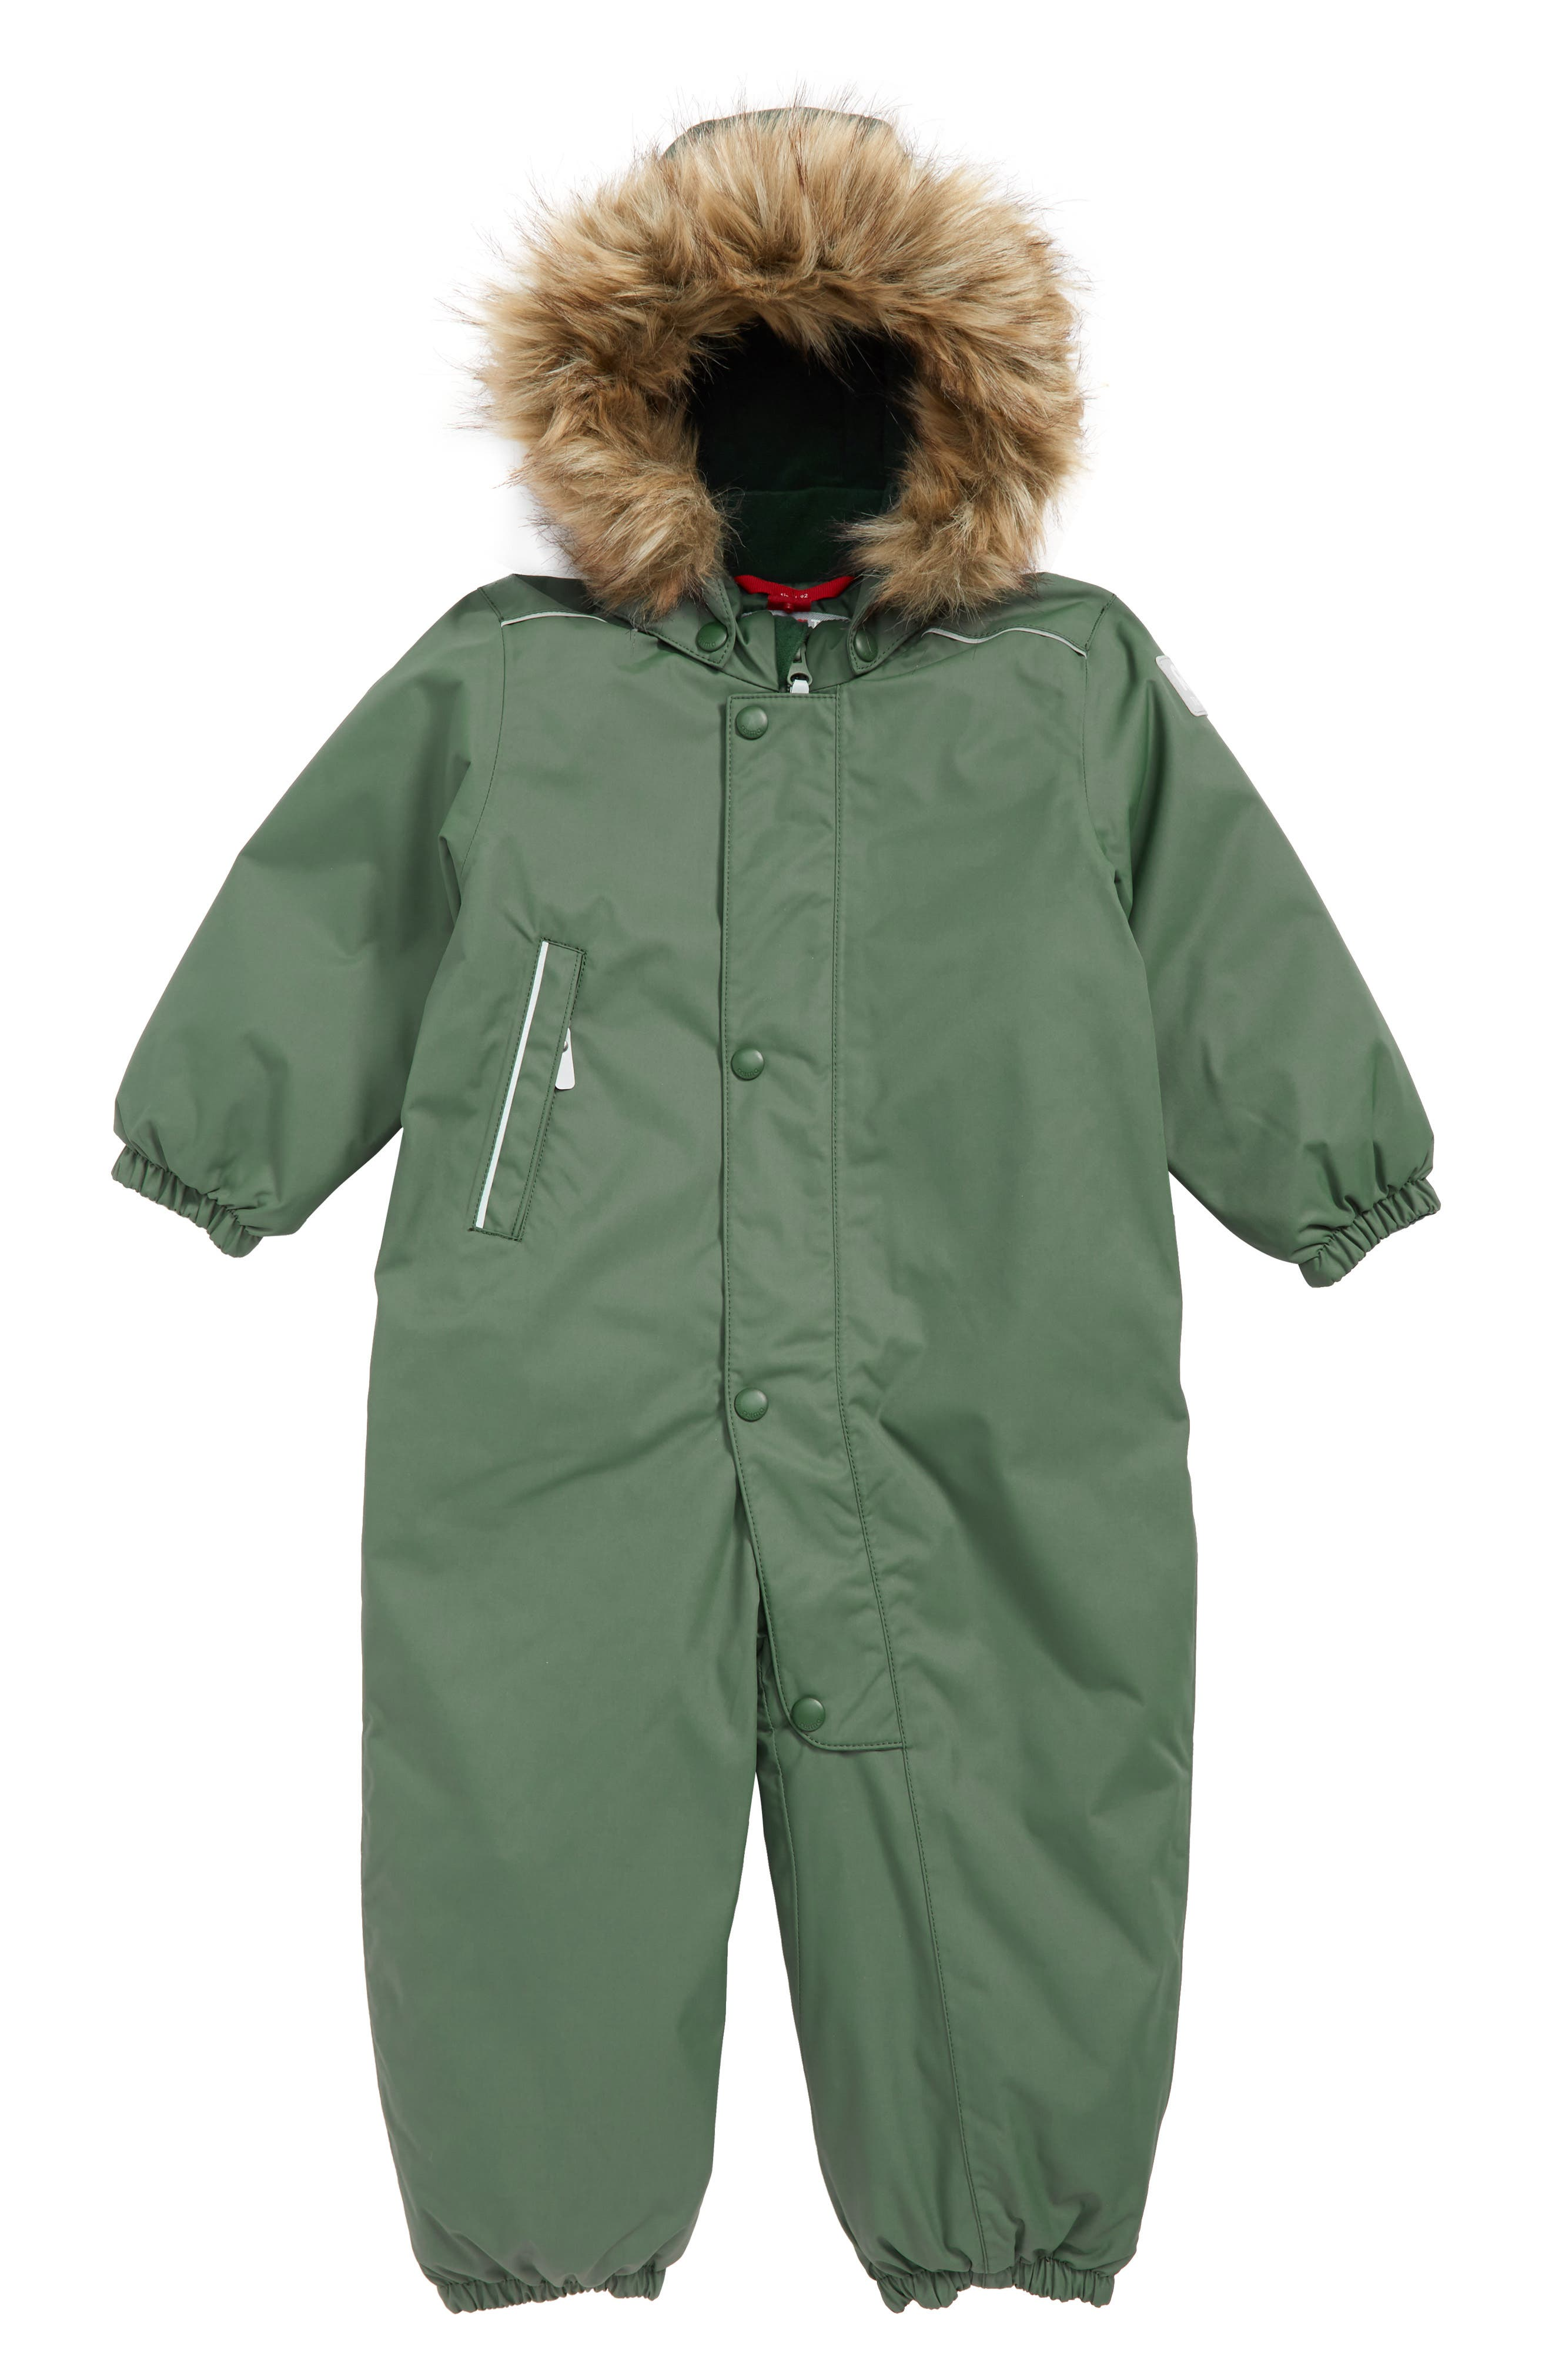 Gotland Reimatec<sup>®</sup> Waterproof Insulated Snow Suit with Faux Fur Trim,                         Main,                         color, GREEN